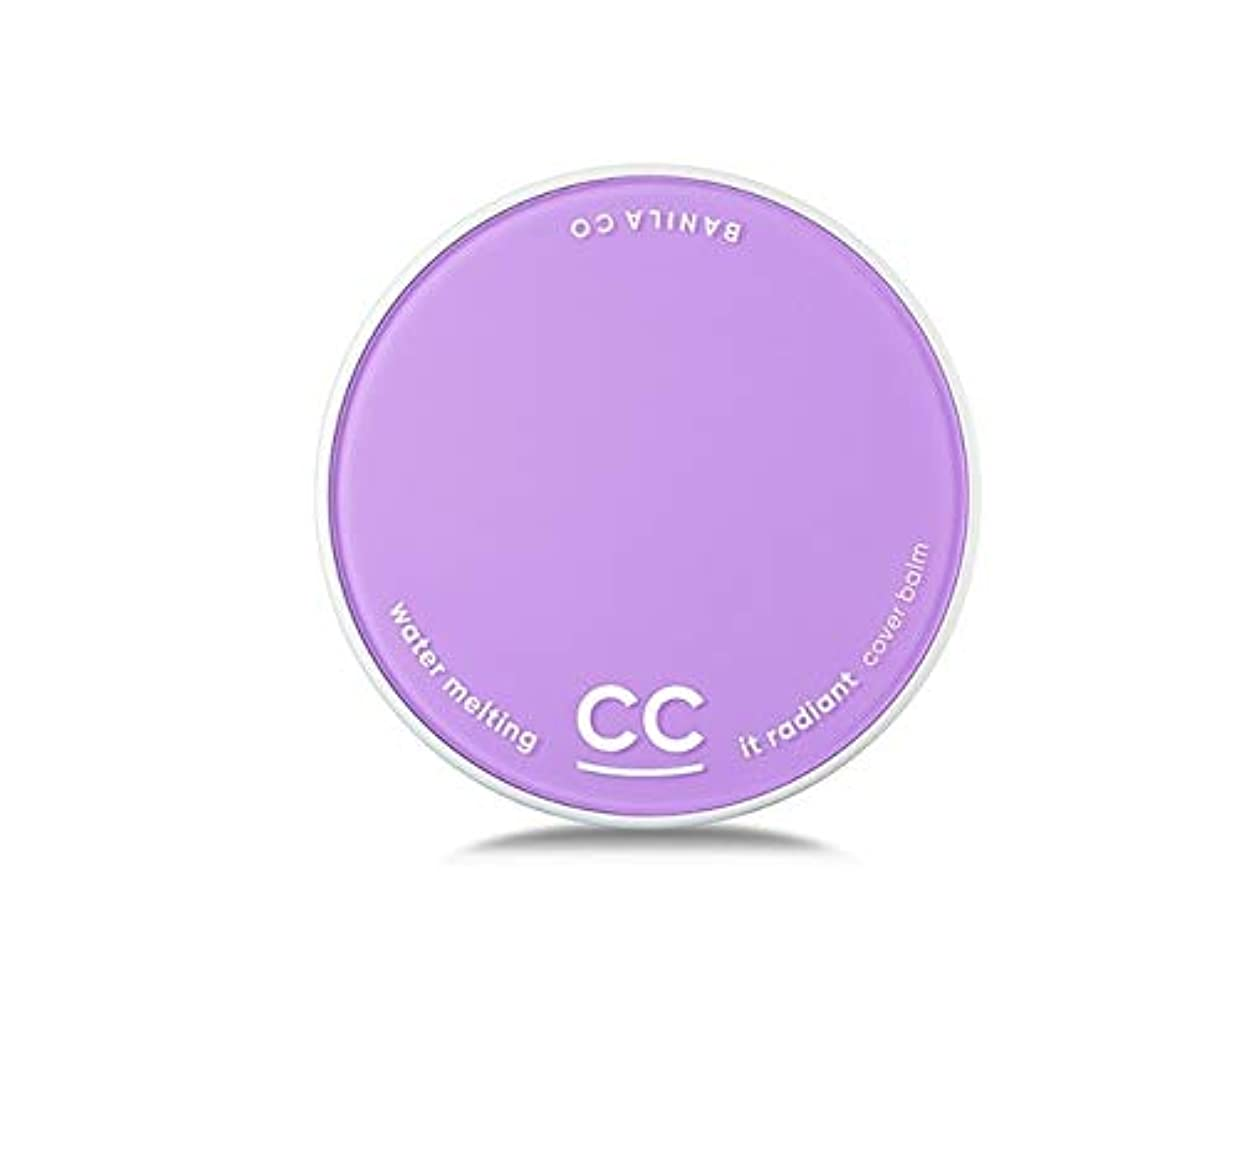 鮫無人罰banilaco It Radiant CCエッセンスカバーバーム/It Radiant CC Essence Cover Balm 15g # natural beige [並行輸入品]